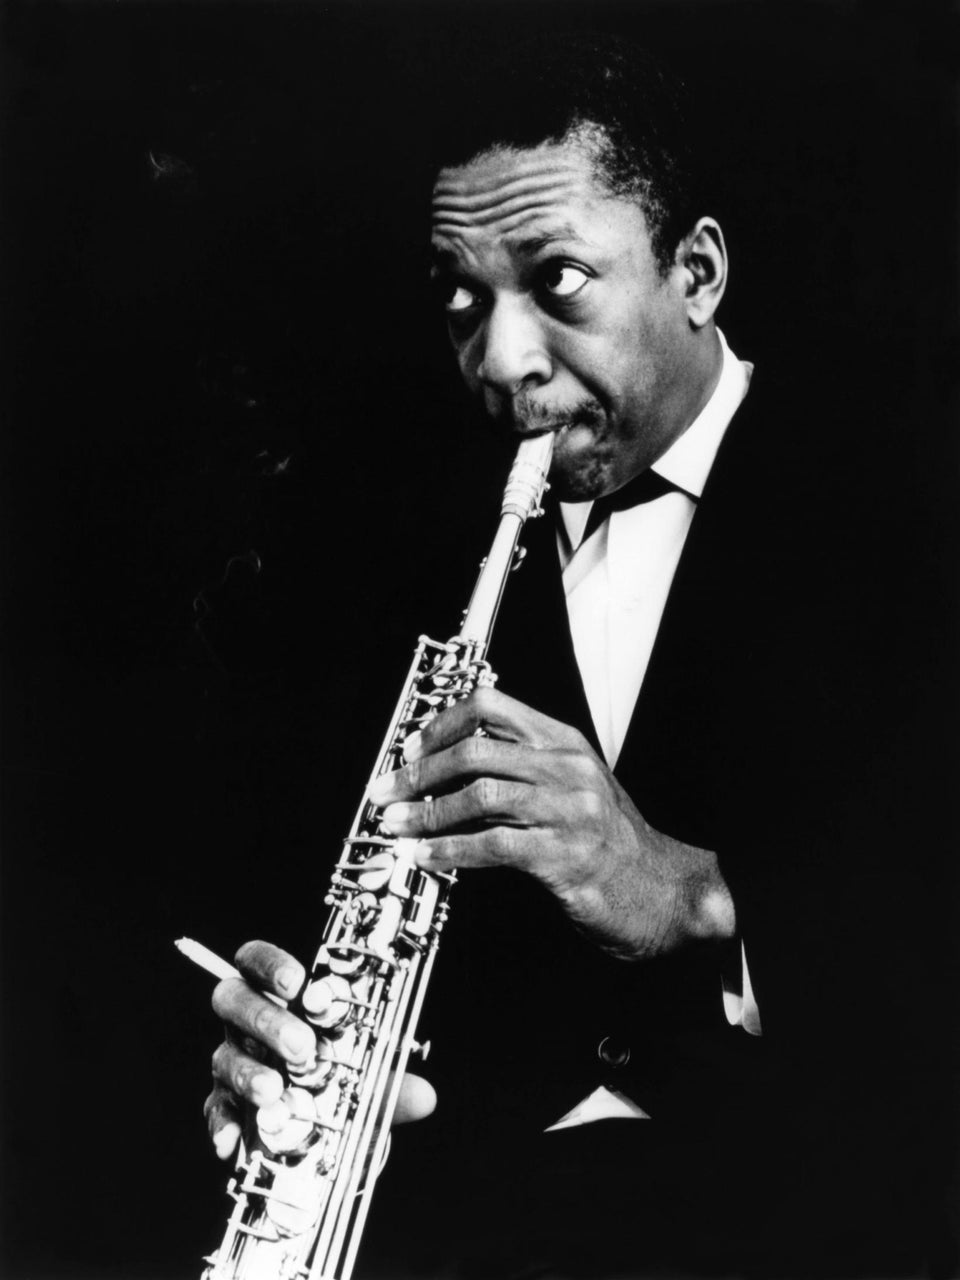 John Coltrane 'A Love Supreme' Added to the Library of Congress